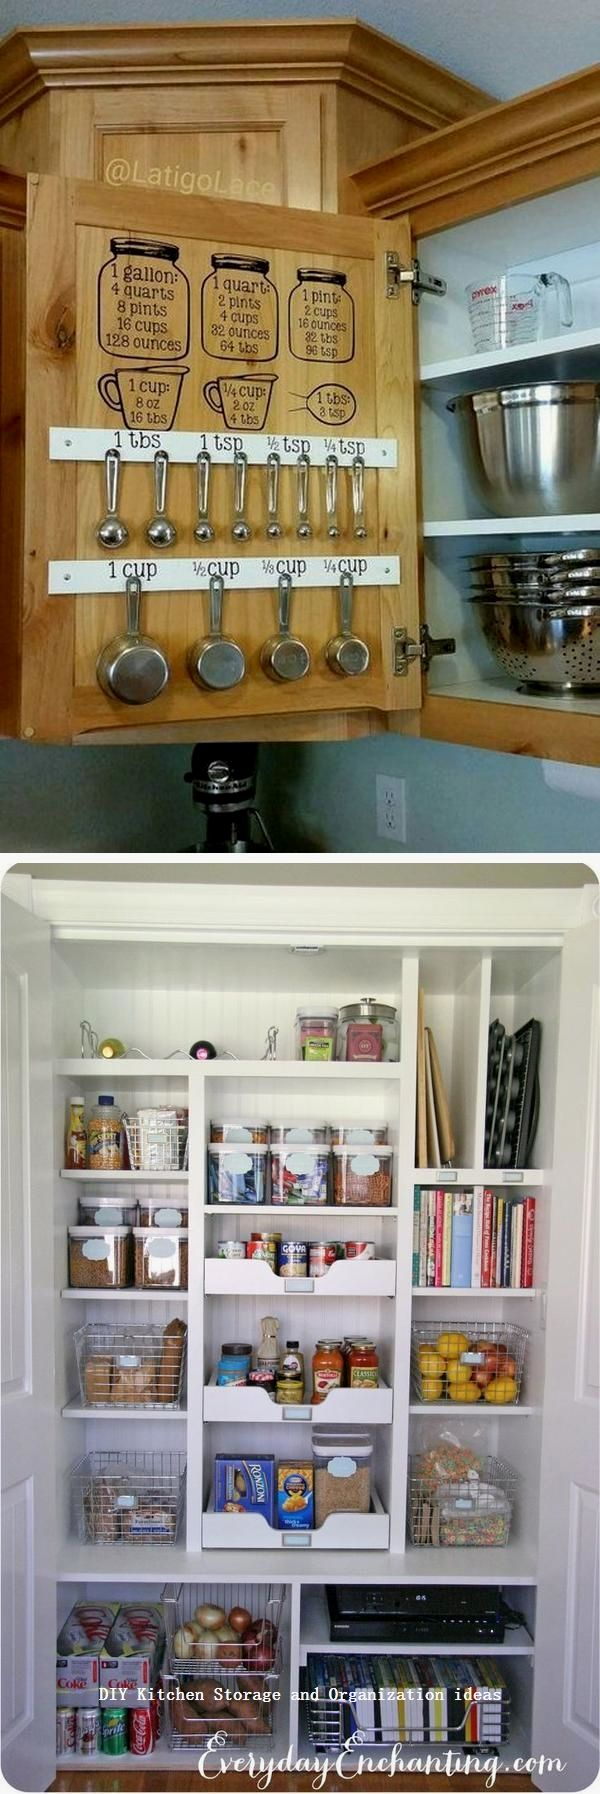 12 Diy Kitchen Storage Ideas For More Space In The Kitchen 1 Sewing Room Organization Diy Sewing Room Storage Room Organization Diy